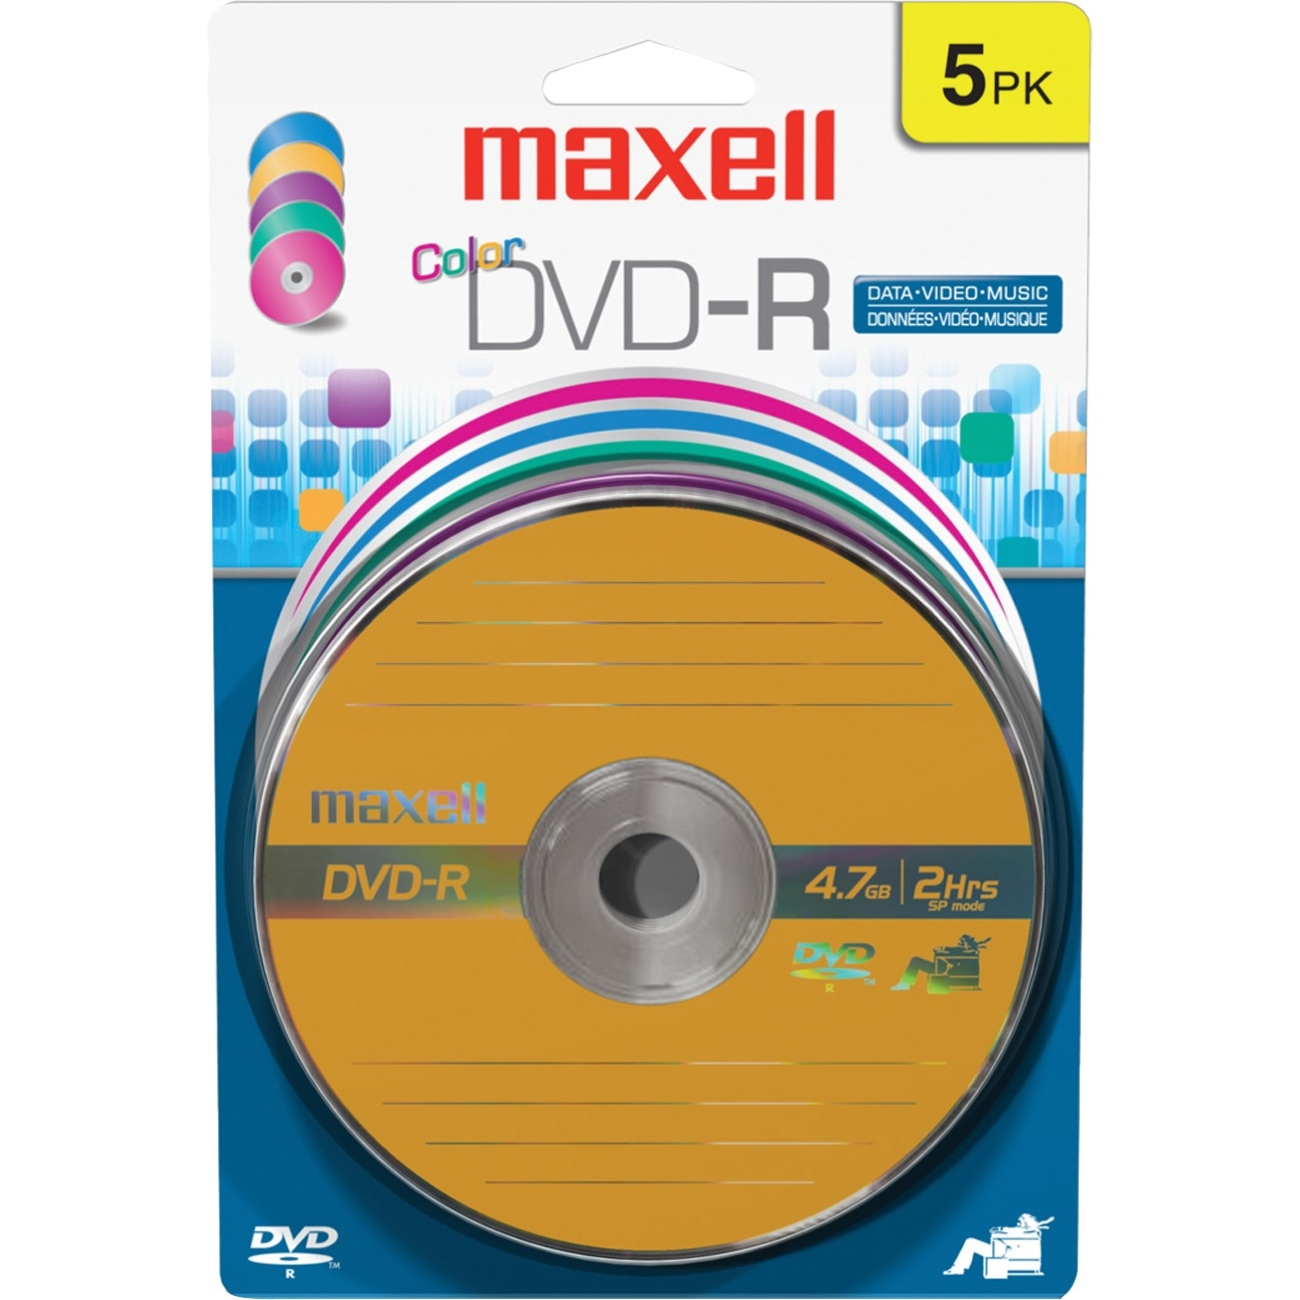 Maxell 16x DVD-R Media 638033